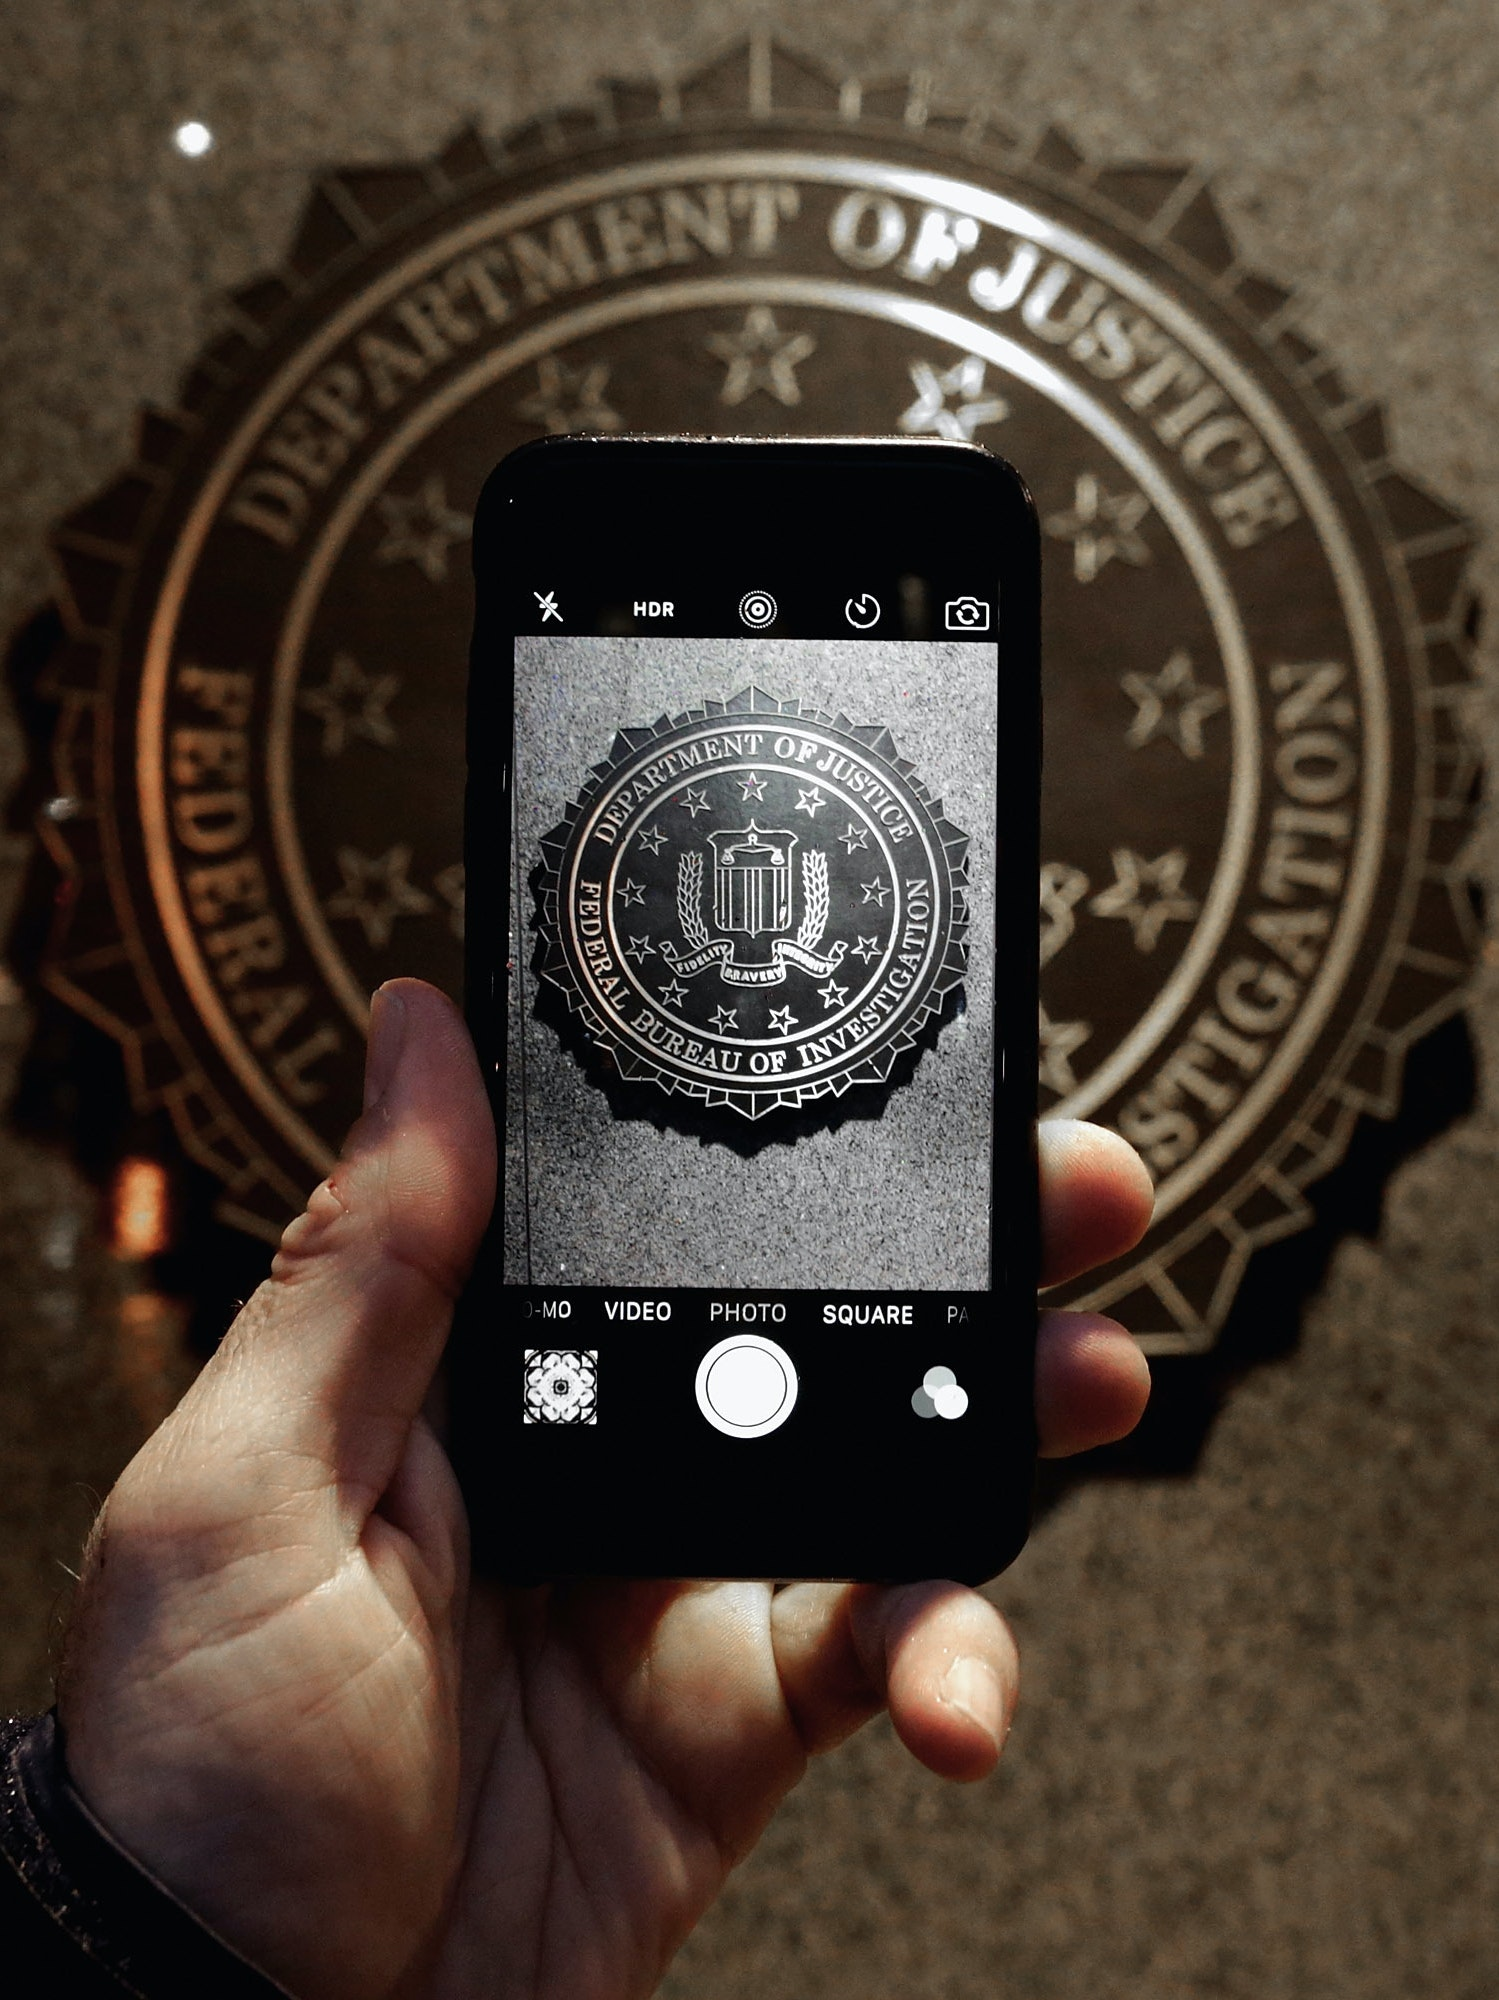 WASHINGTON, DC - FEBRUARY 23:  The official seal of the Federal Bureau of Investigation is seen on an iPhone's camera screen outside the J. Edgar Hoover headquarters February 23, 2016 in Washington, DC. Last week a federal judge ordered Apple to write software that would allow law enforcement agencies investigating the December 2, 2015 terrorist attack in San Bernardino, California, to hack into one of the attacker's iPhone. Apple is fighting the order, saying it would create a way for hackers, foreign governments, and other nefarious groups to invade its customers' privacy.  (Photo by Chip Somodevilla/Getty Images)